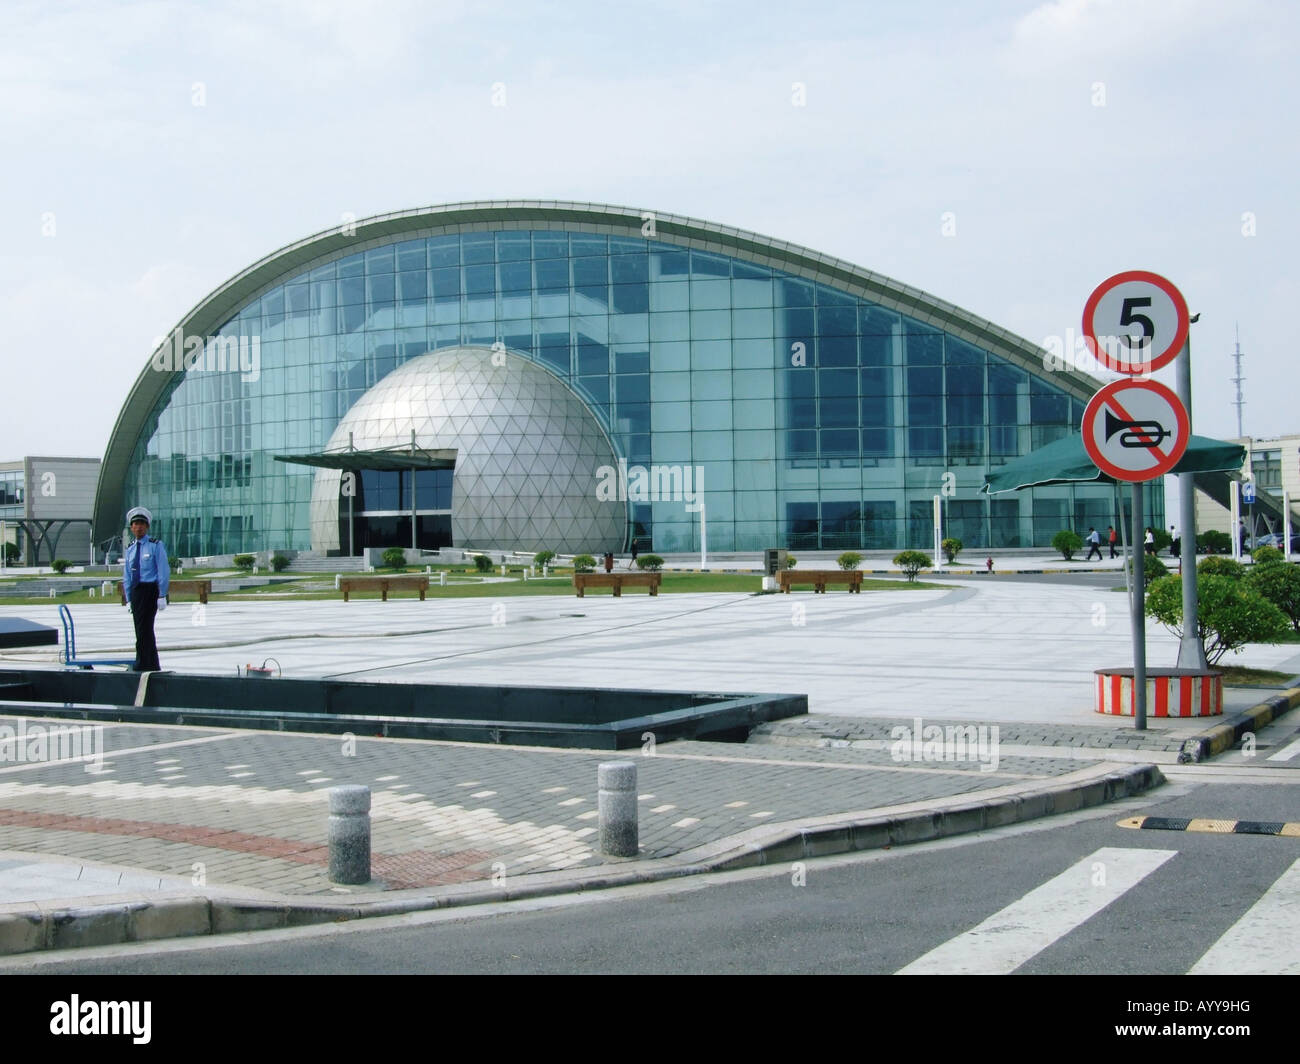 A security guard stands in front of the Exhibition Center of Shanghai in Lingang New City near Shanghai China Stock Photo